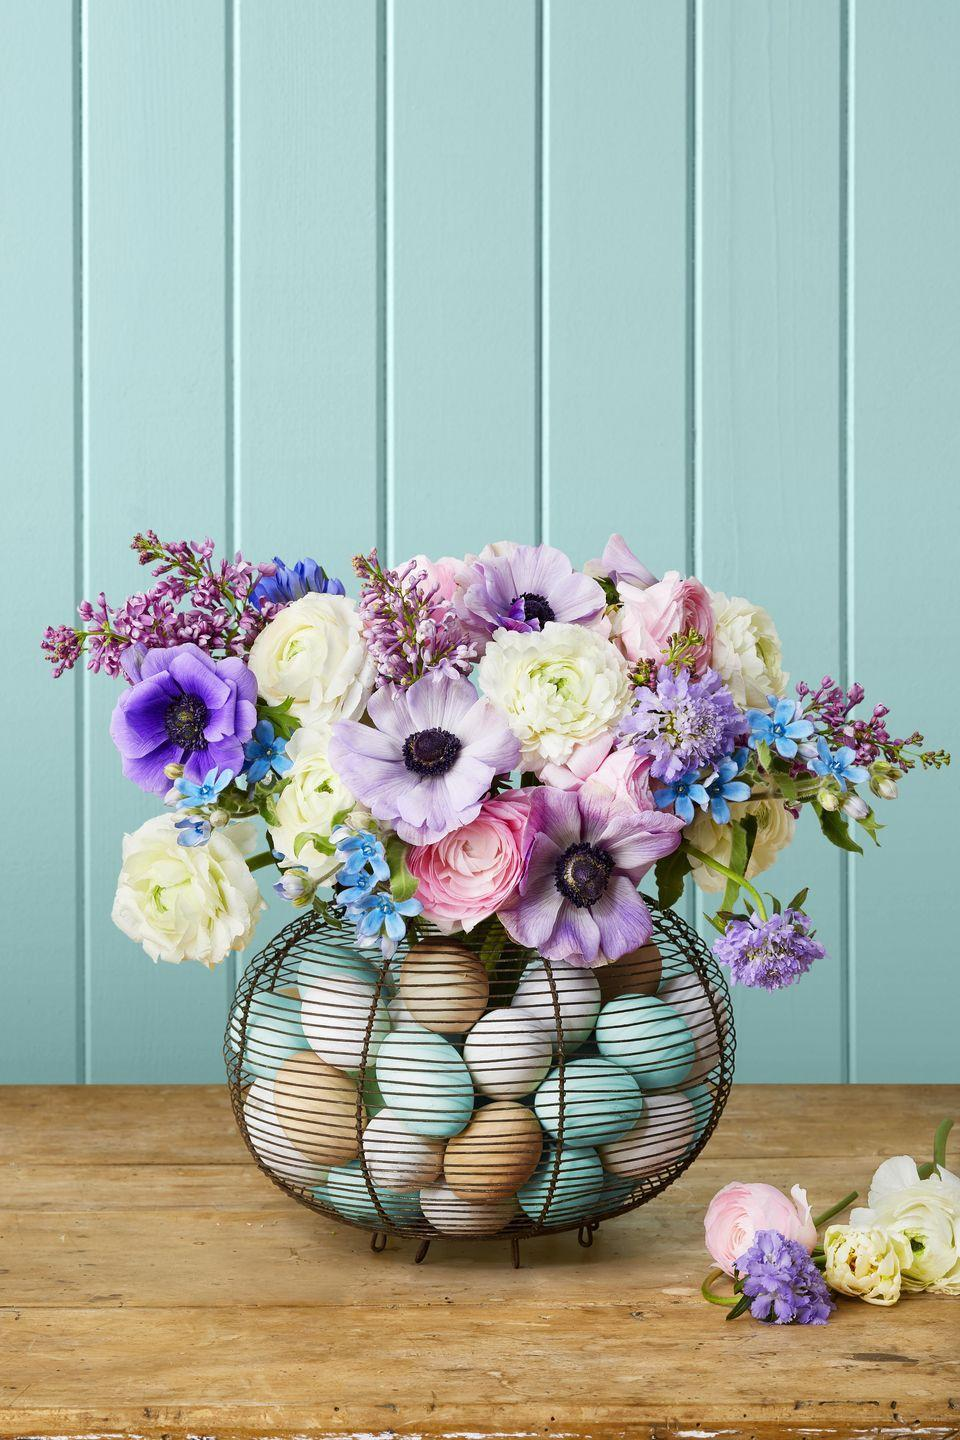 "<p>A vintage French egg collecting basket filled with colorful wooden eggs makes the perfect home for displaying your abundant spring bouquet (here are lilacs, anemones, Scabiosa lavender, allium, and ranunculus).</p><p><strong>To make:</strong> Dye or paint wooden eggs white or robin's egg blue. You can also leave a few natural. Place a vase inside the basket and surround with eggs. Fill vase with water and flowers. </p><p><a class=""link rapid-noclick-resp"" href=""https://www.amazon.com/Unfinished-Unpainted-Wooden-Easter-Decorate/dp/B083GG6VQ9/ref=sr_1_7?tag=syn-yahoo-20&ascsubtag=%5Bartid%7C10050.g.1652%5Bsrc%7Cyahoo-us"" rel=""nofollow noopener"" target=""_blank"" data-ylk=""slk:SHOP WOODEN EGGS"">SHOP WOODEN EGGS</a></p>"